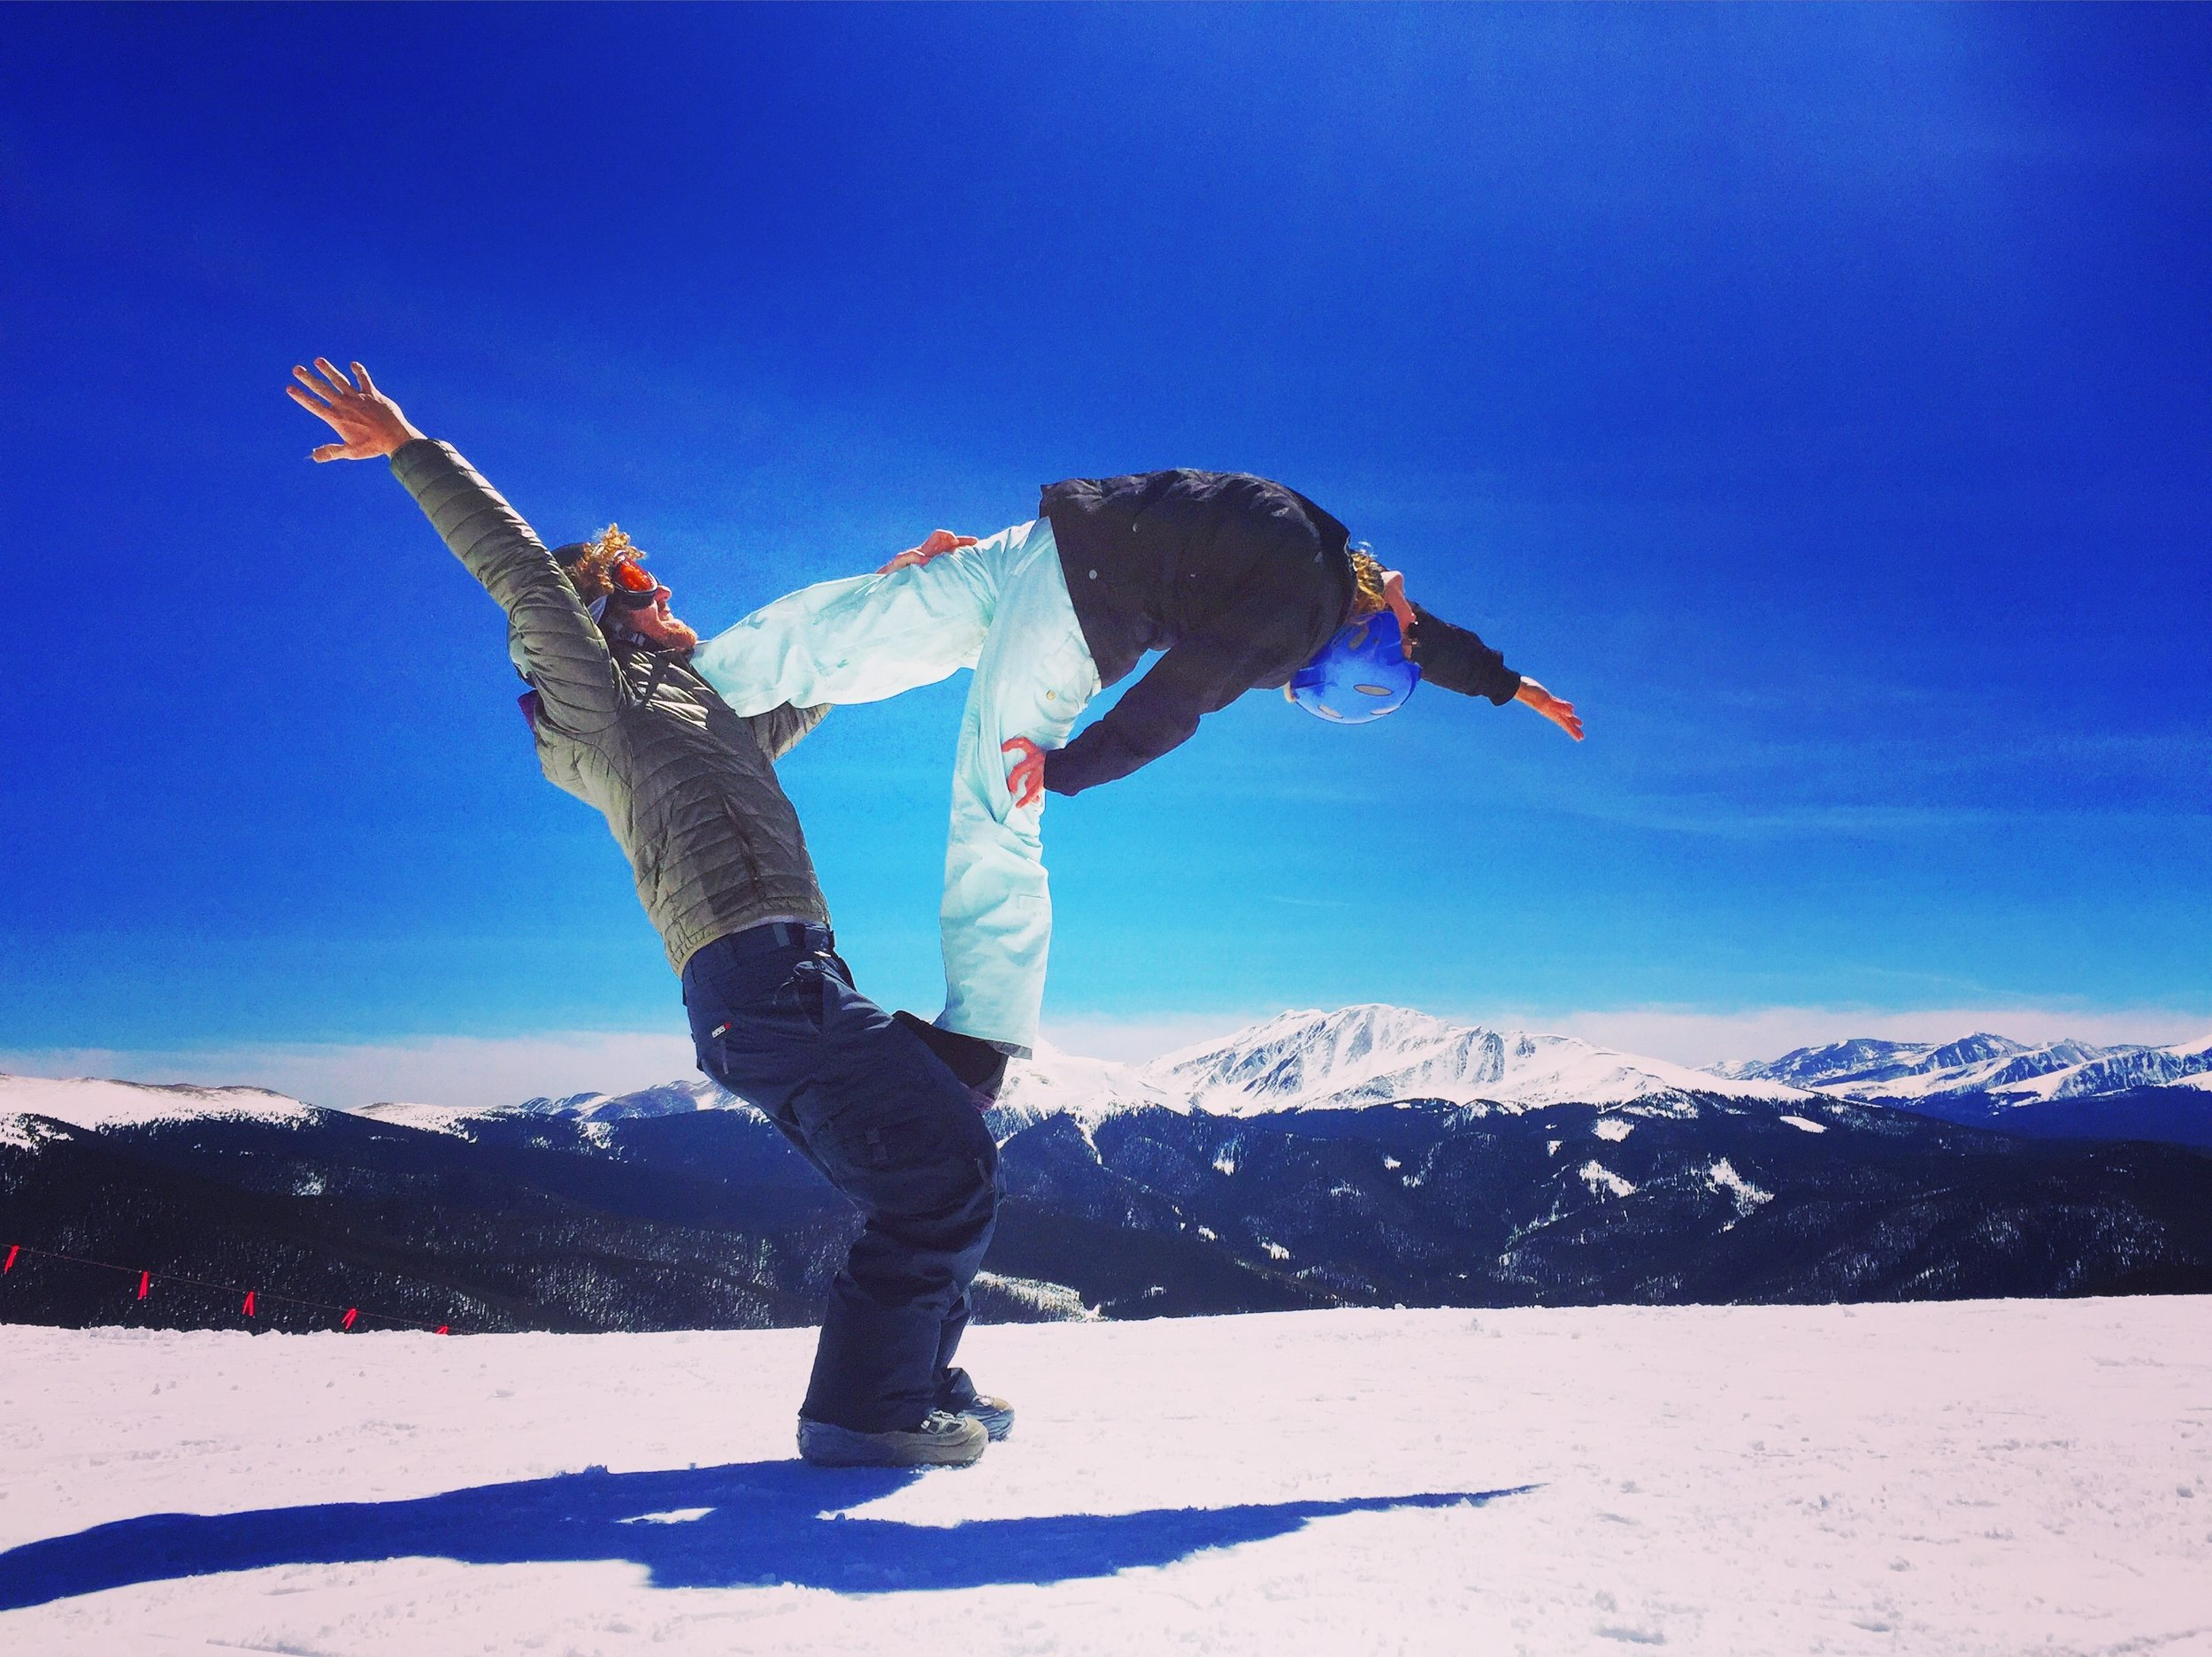 AcroYoga in the Snow